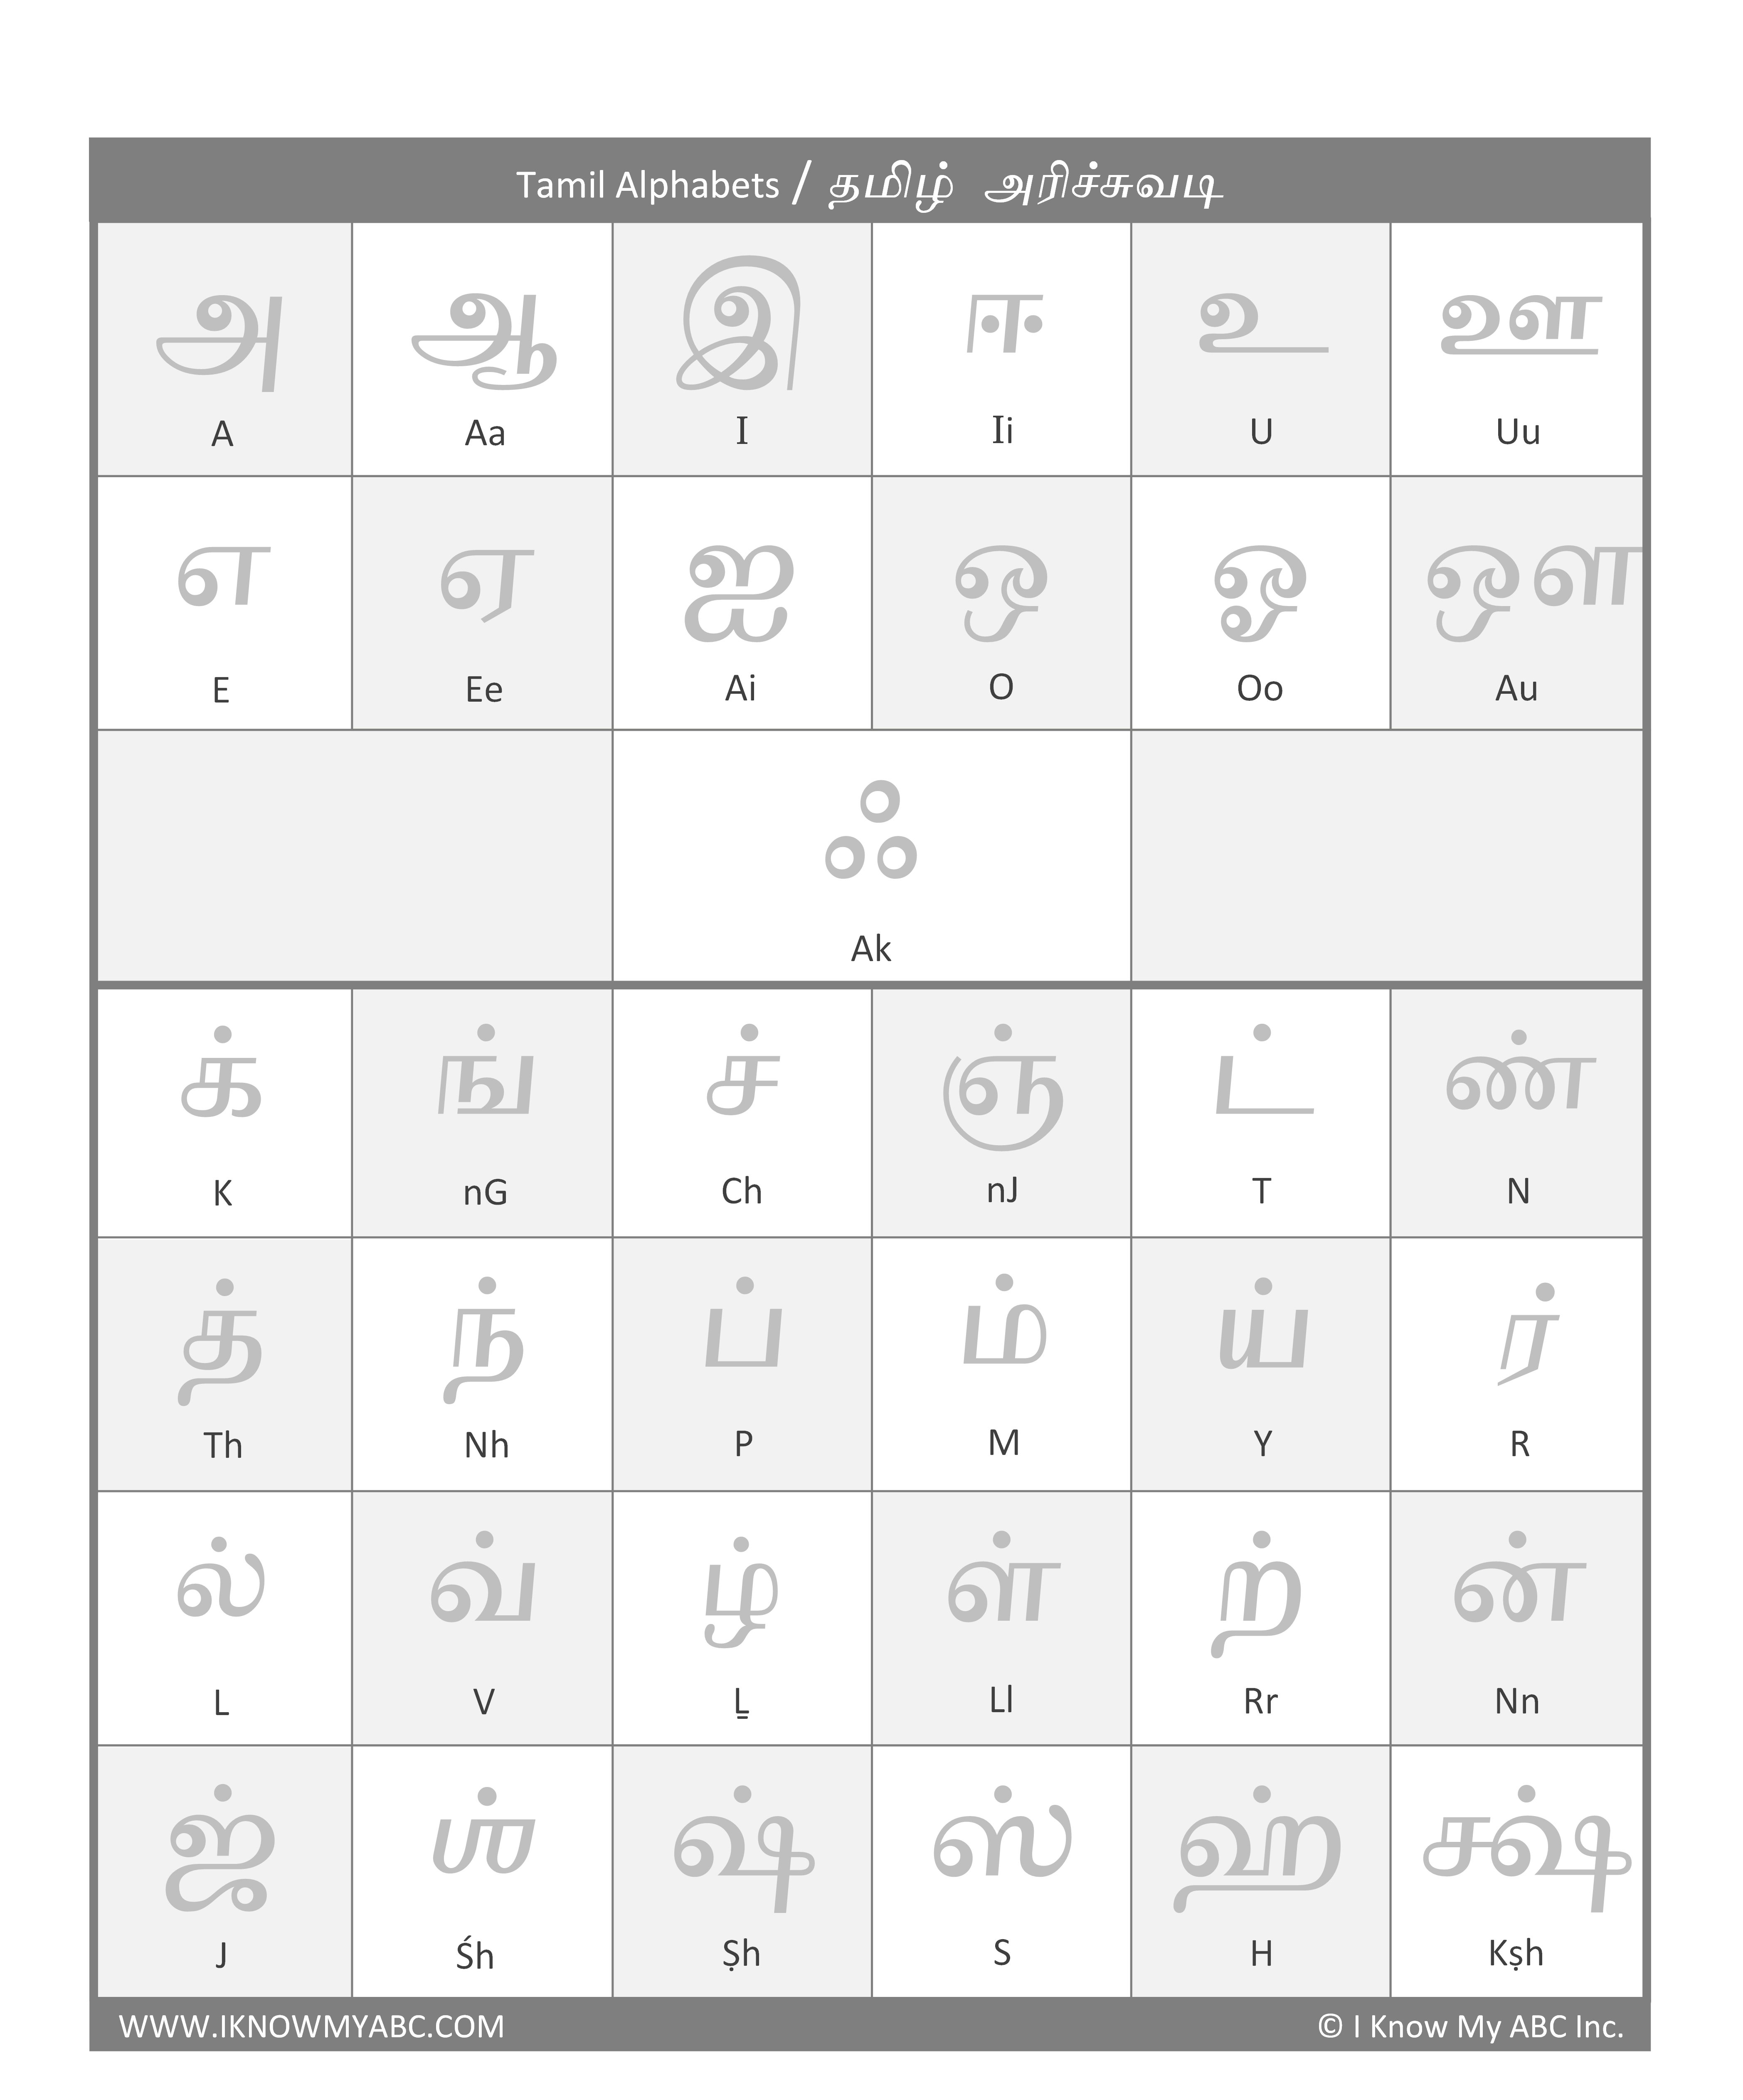 Learn Tamil Alphabets Free Educational Resources I